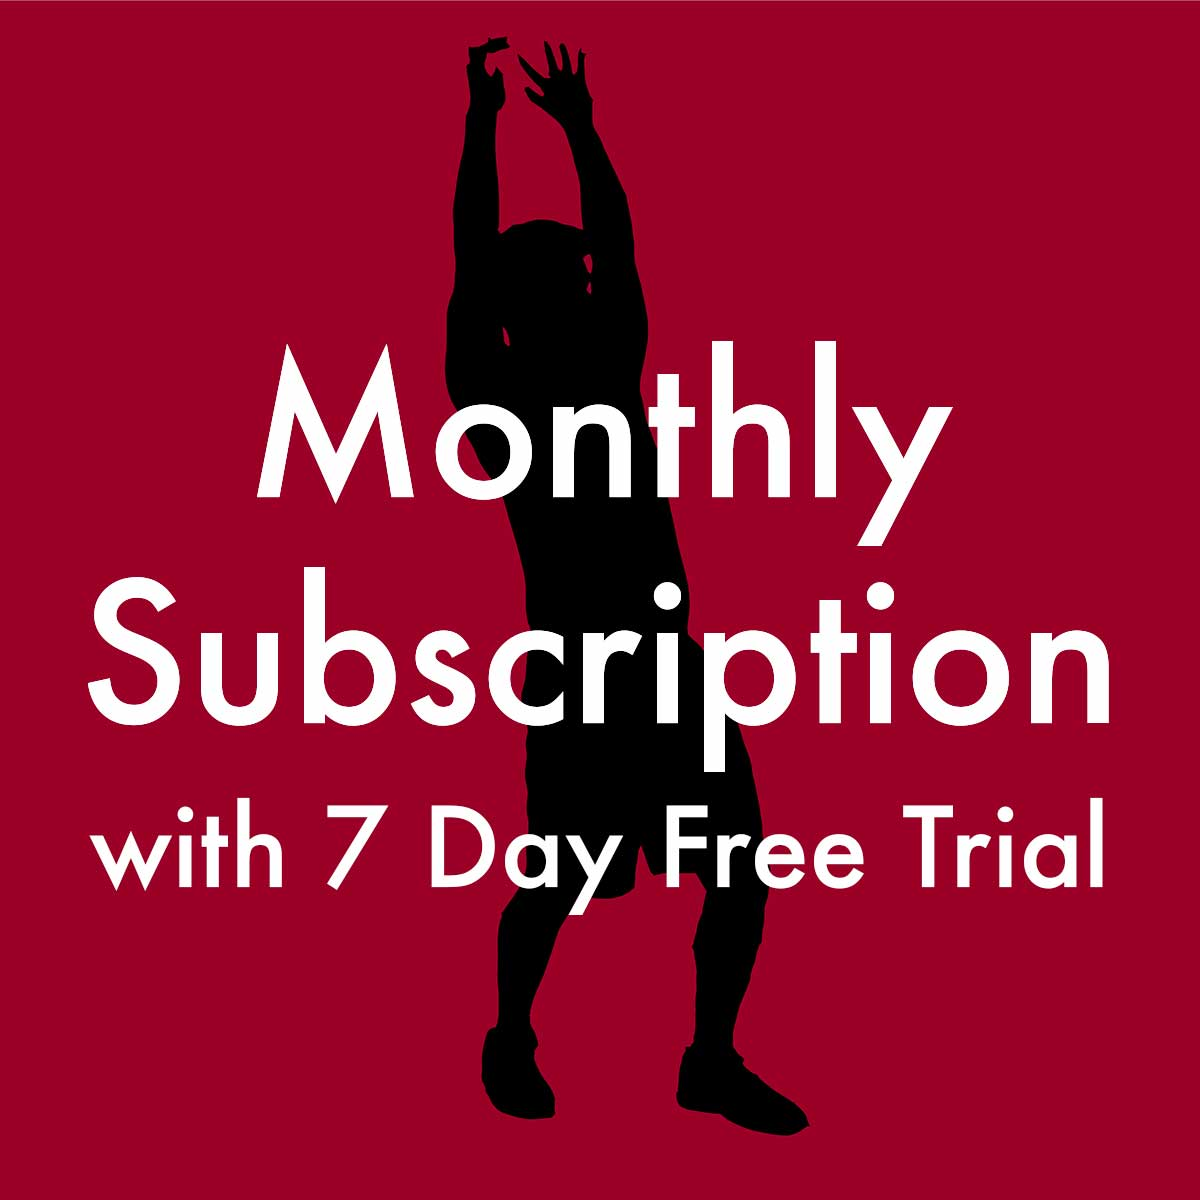 Monthly Subscription with 7 Day Free Trial